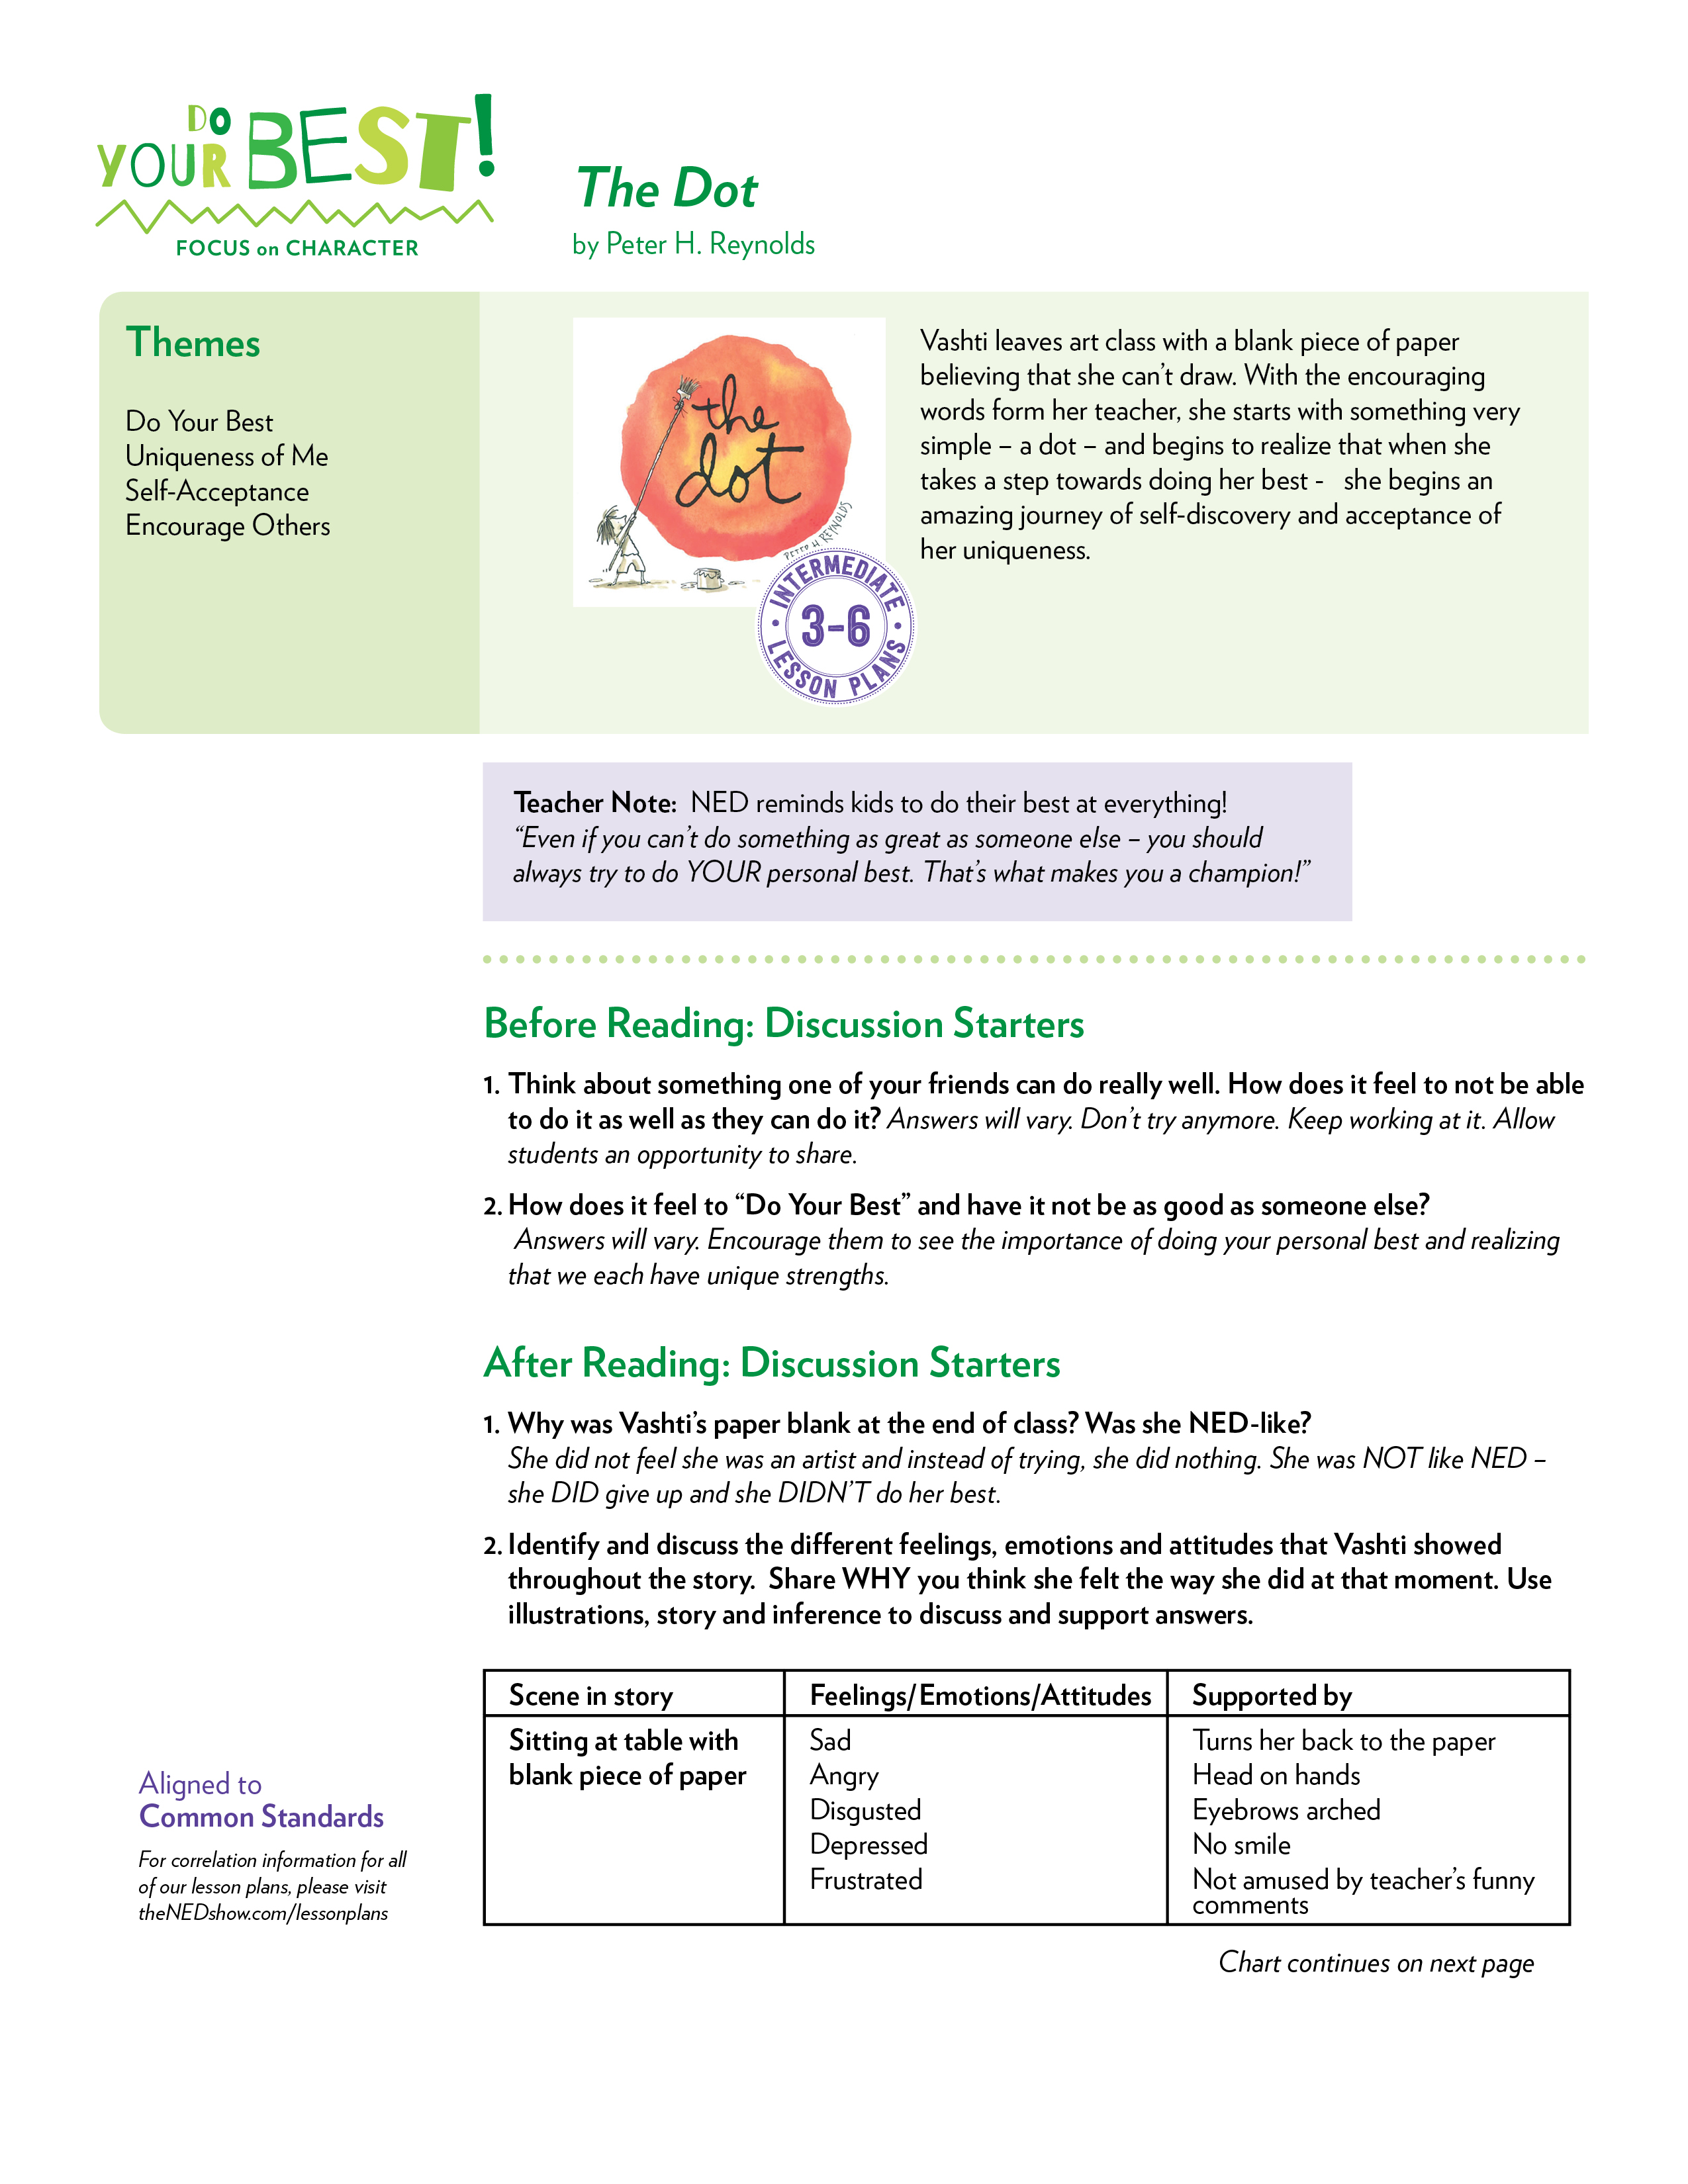 The Dot Lesson